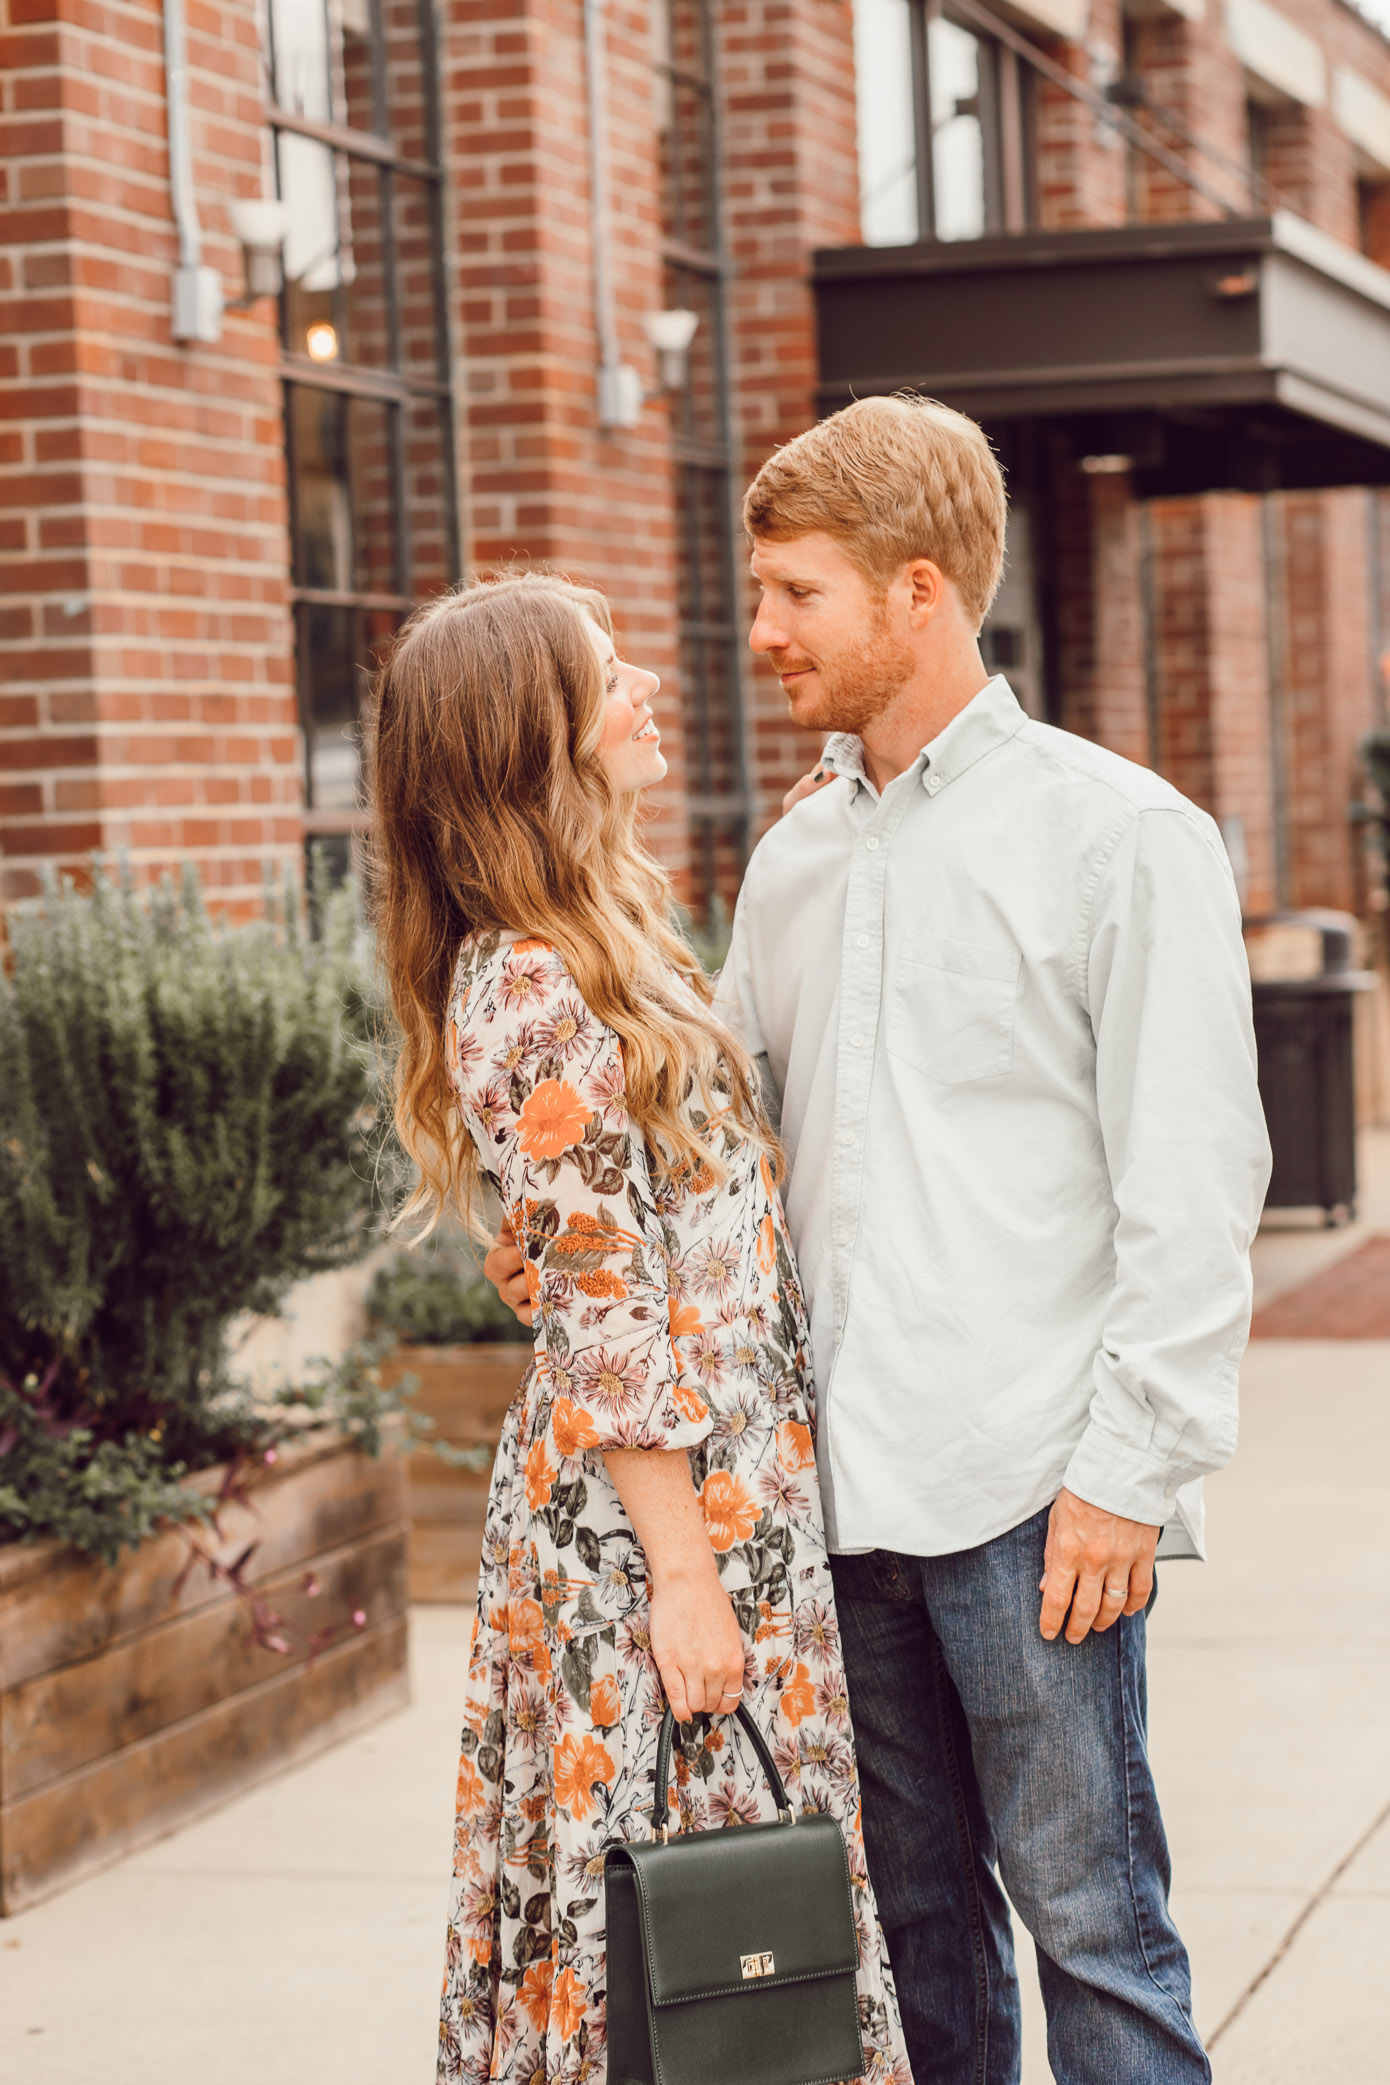 Five Ways to Step Up Your Date Night Beauty Game | Date Night Beauty Tips featured on Louella Reese Blog